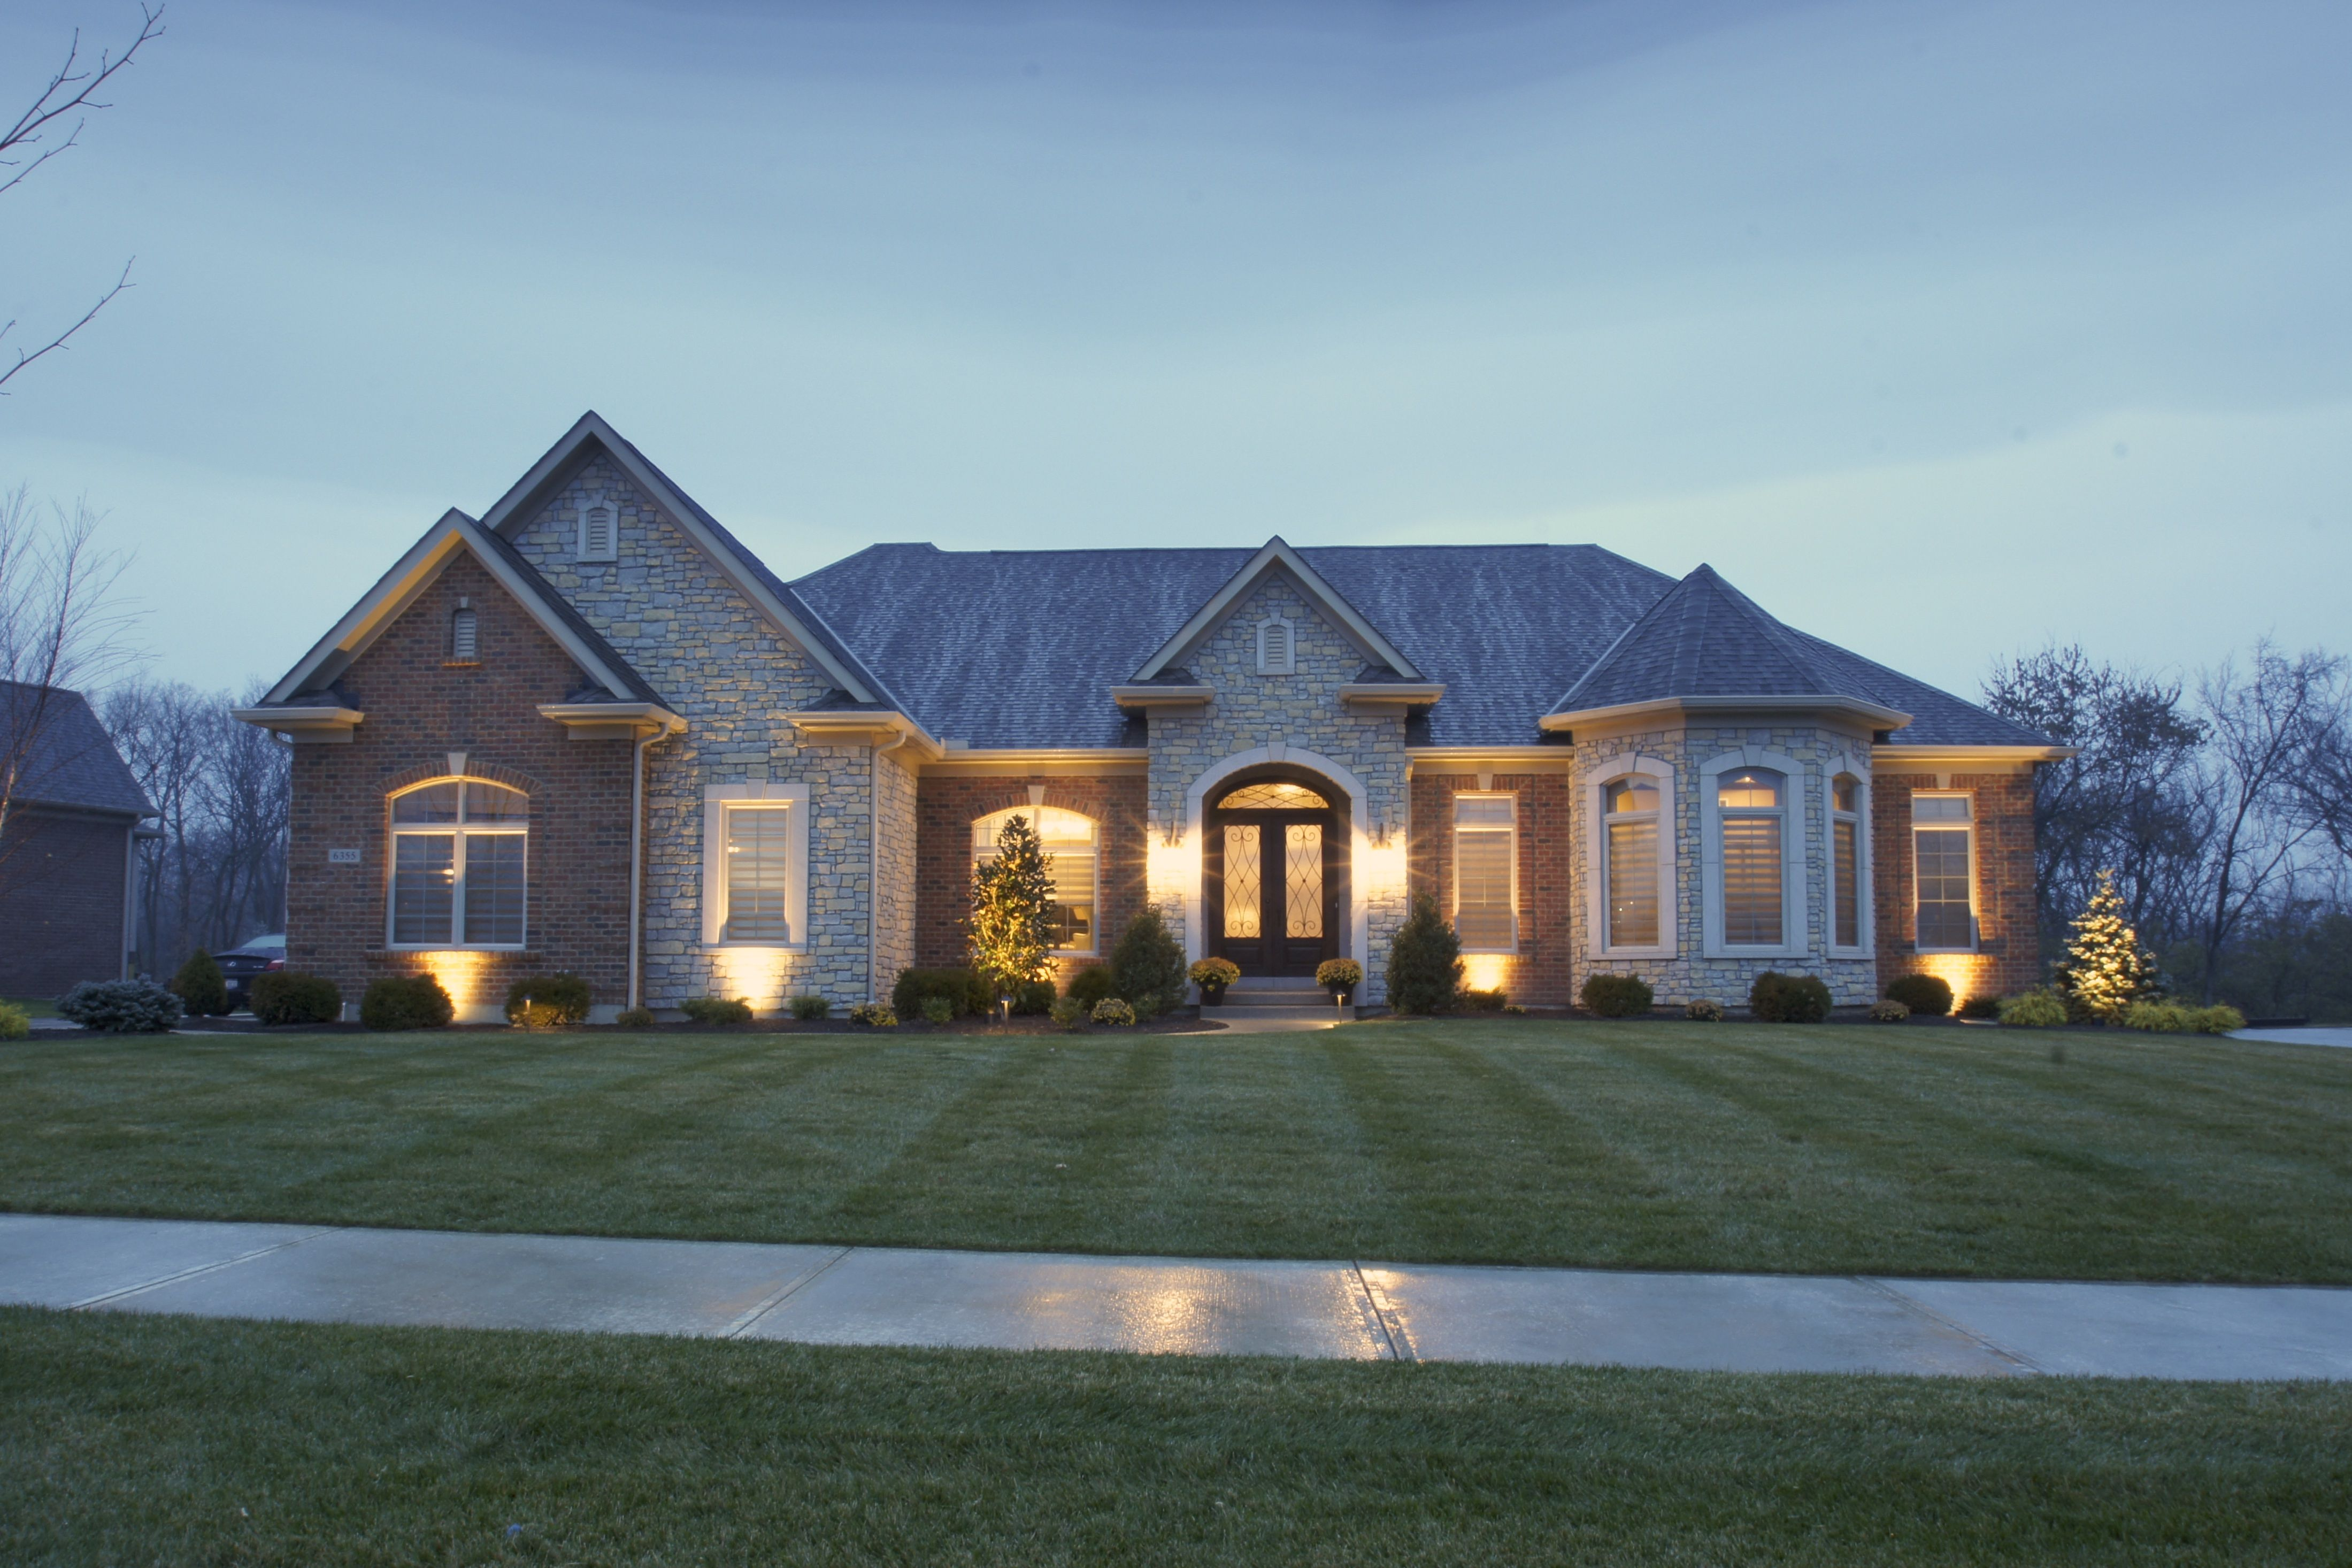 Exterior of custom ranch home built by wieland builders